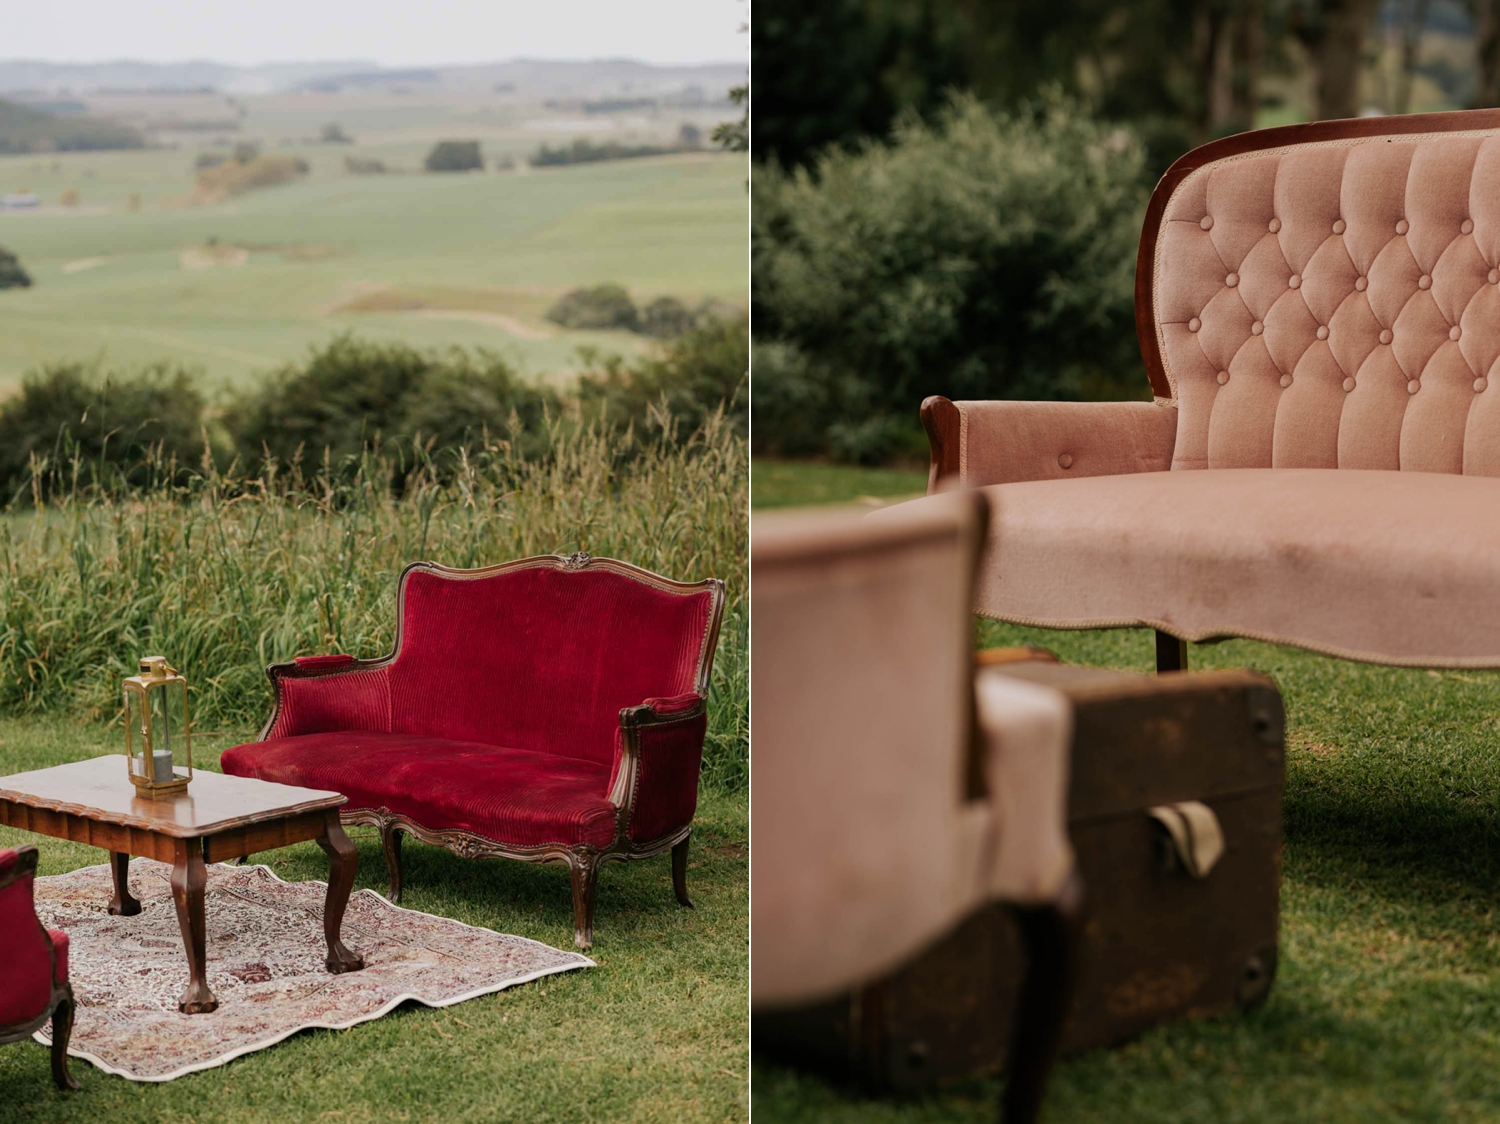 Red and pink pintage couches on lawn for wedding canapes and golden hour